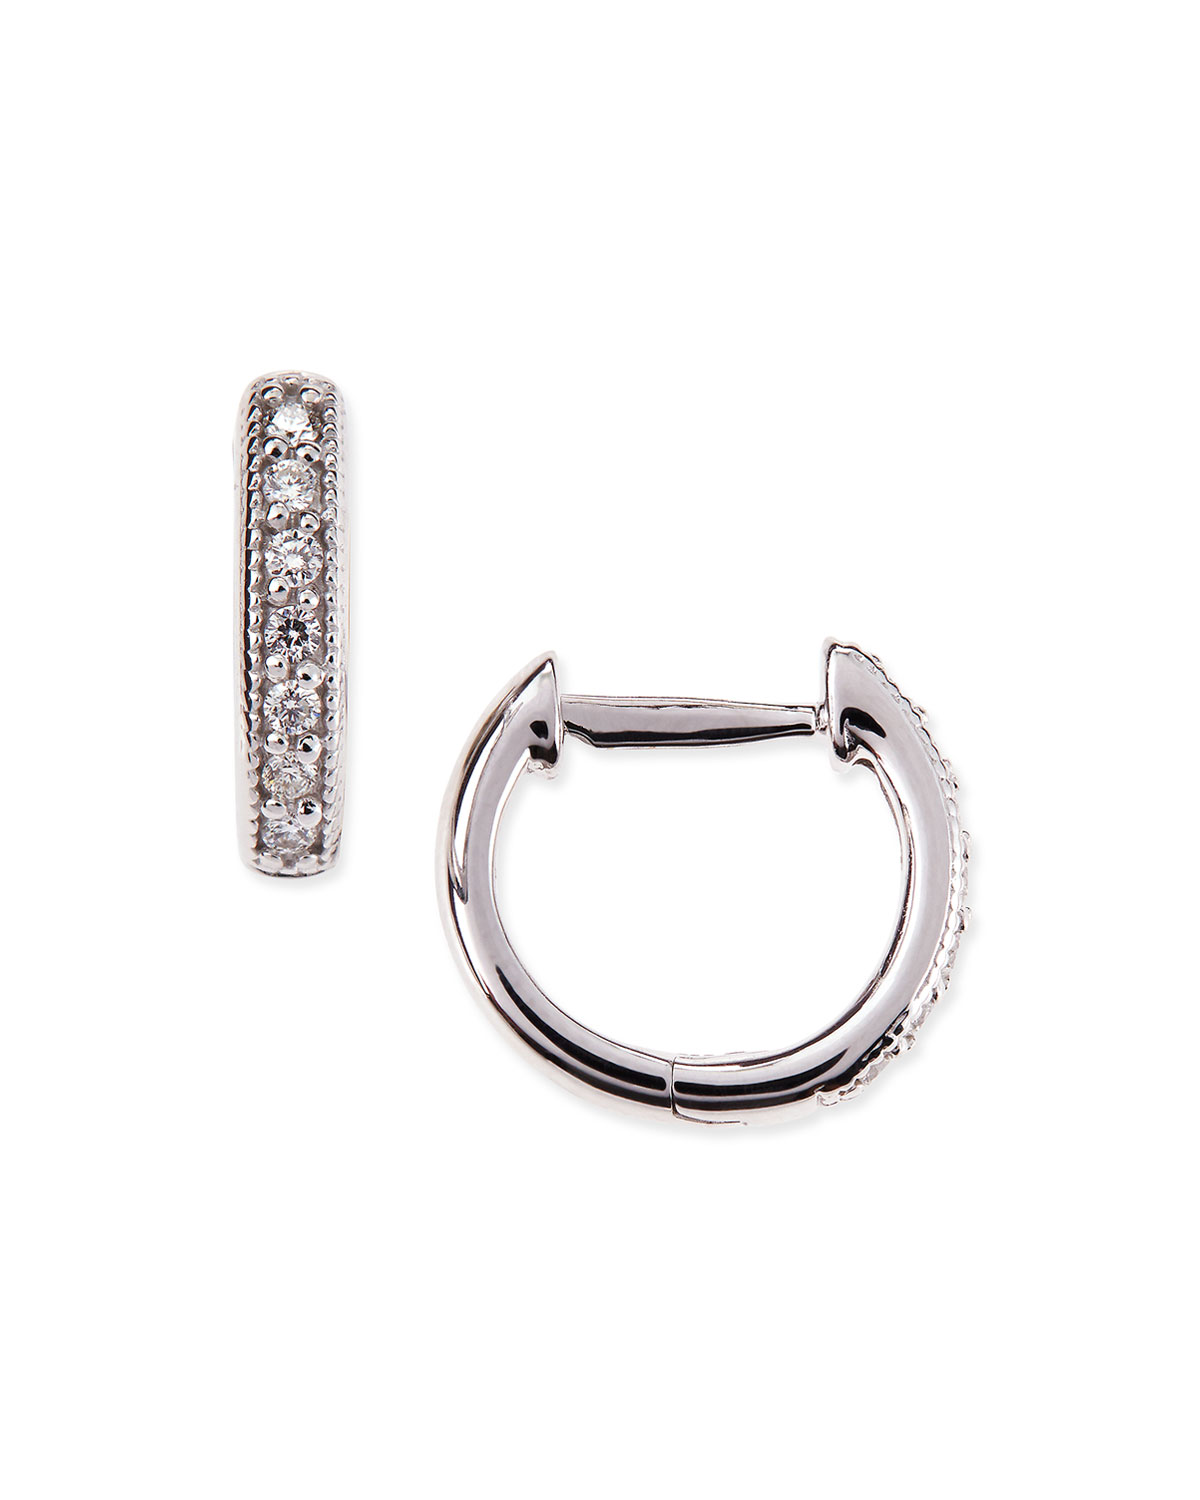 Small 18k White Gold Huggie Hoop Earrings With Diamonds 11mm